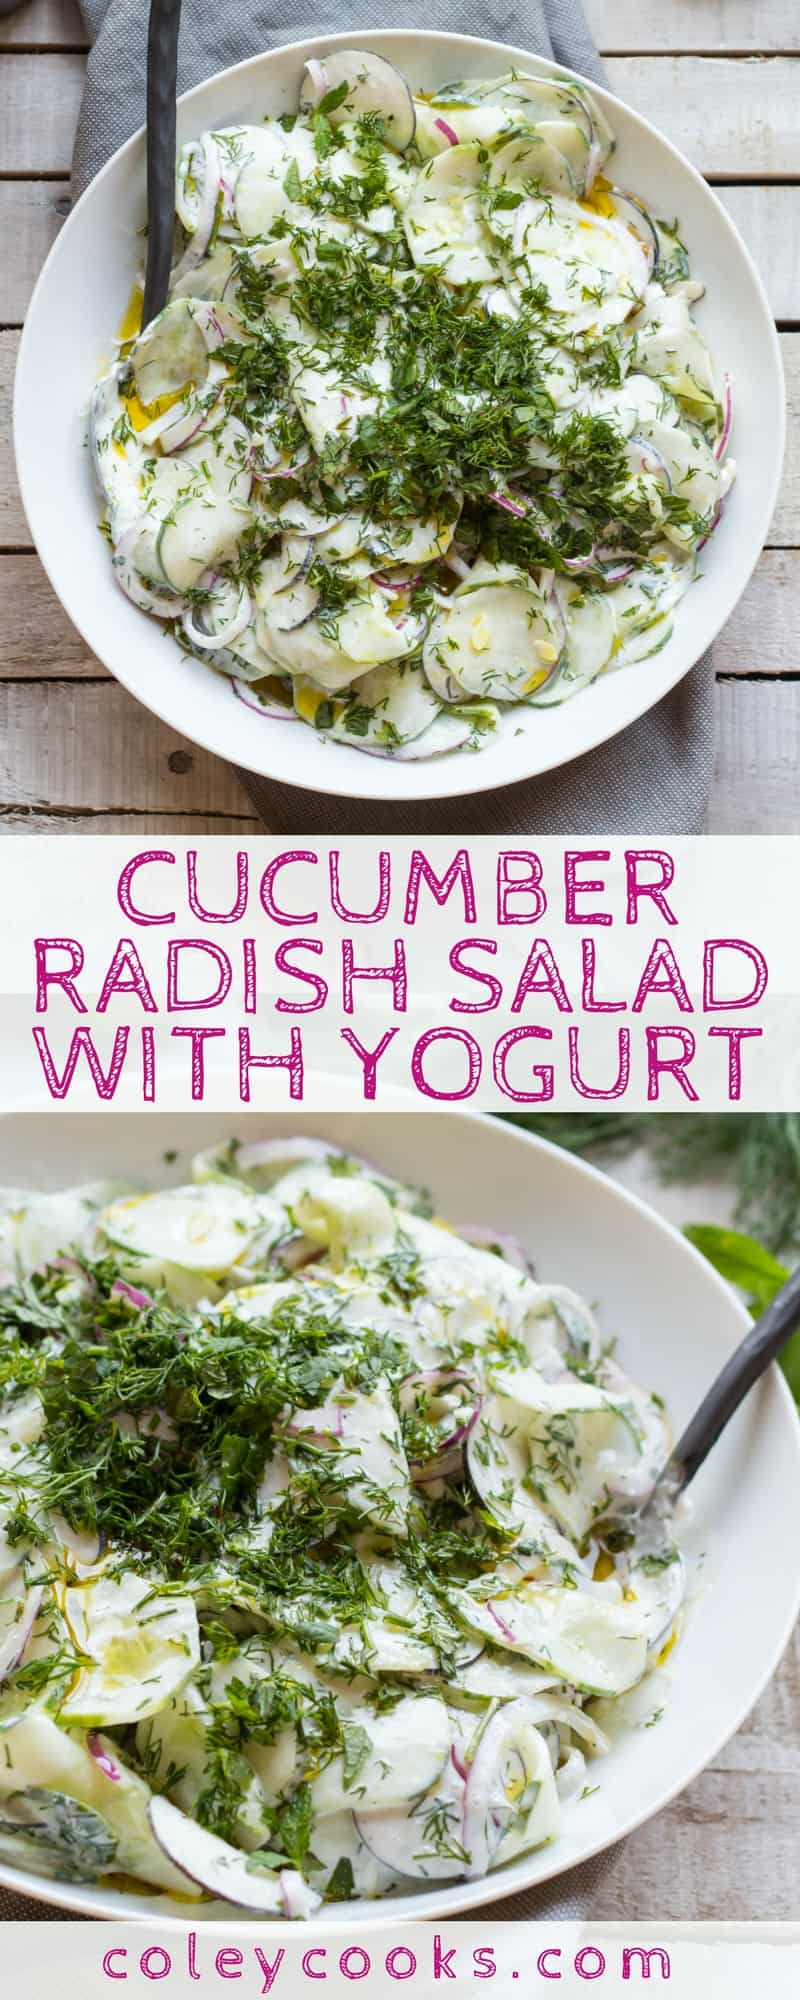 CUCUMBER RADISH SALAD with YOGURT | This summer salad is light, crisp, creamy, and so refreshing! It makes the best summer side to any grilled dinner! #glutenfree #vegetarian | ColeyCooks.com